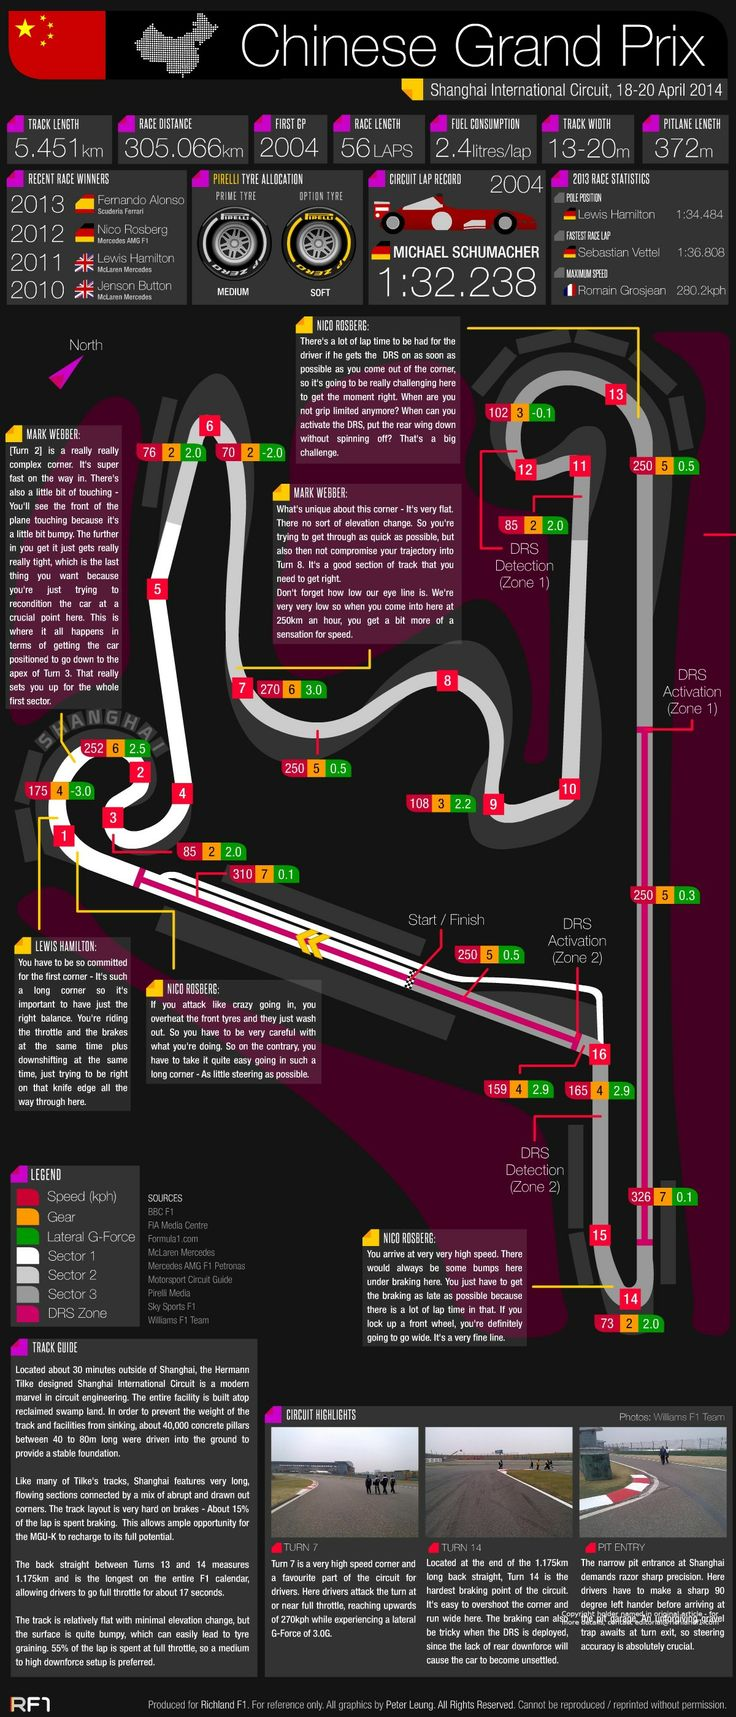 Grand Prix Guide - 2014 Chinese Grand Prix #Shanghai #F1